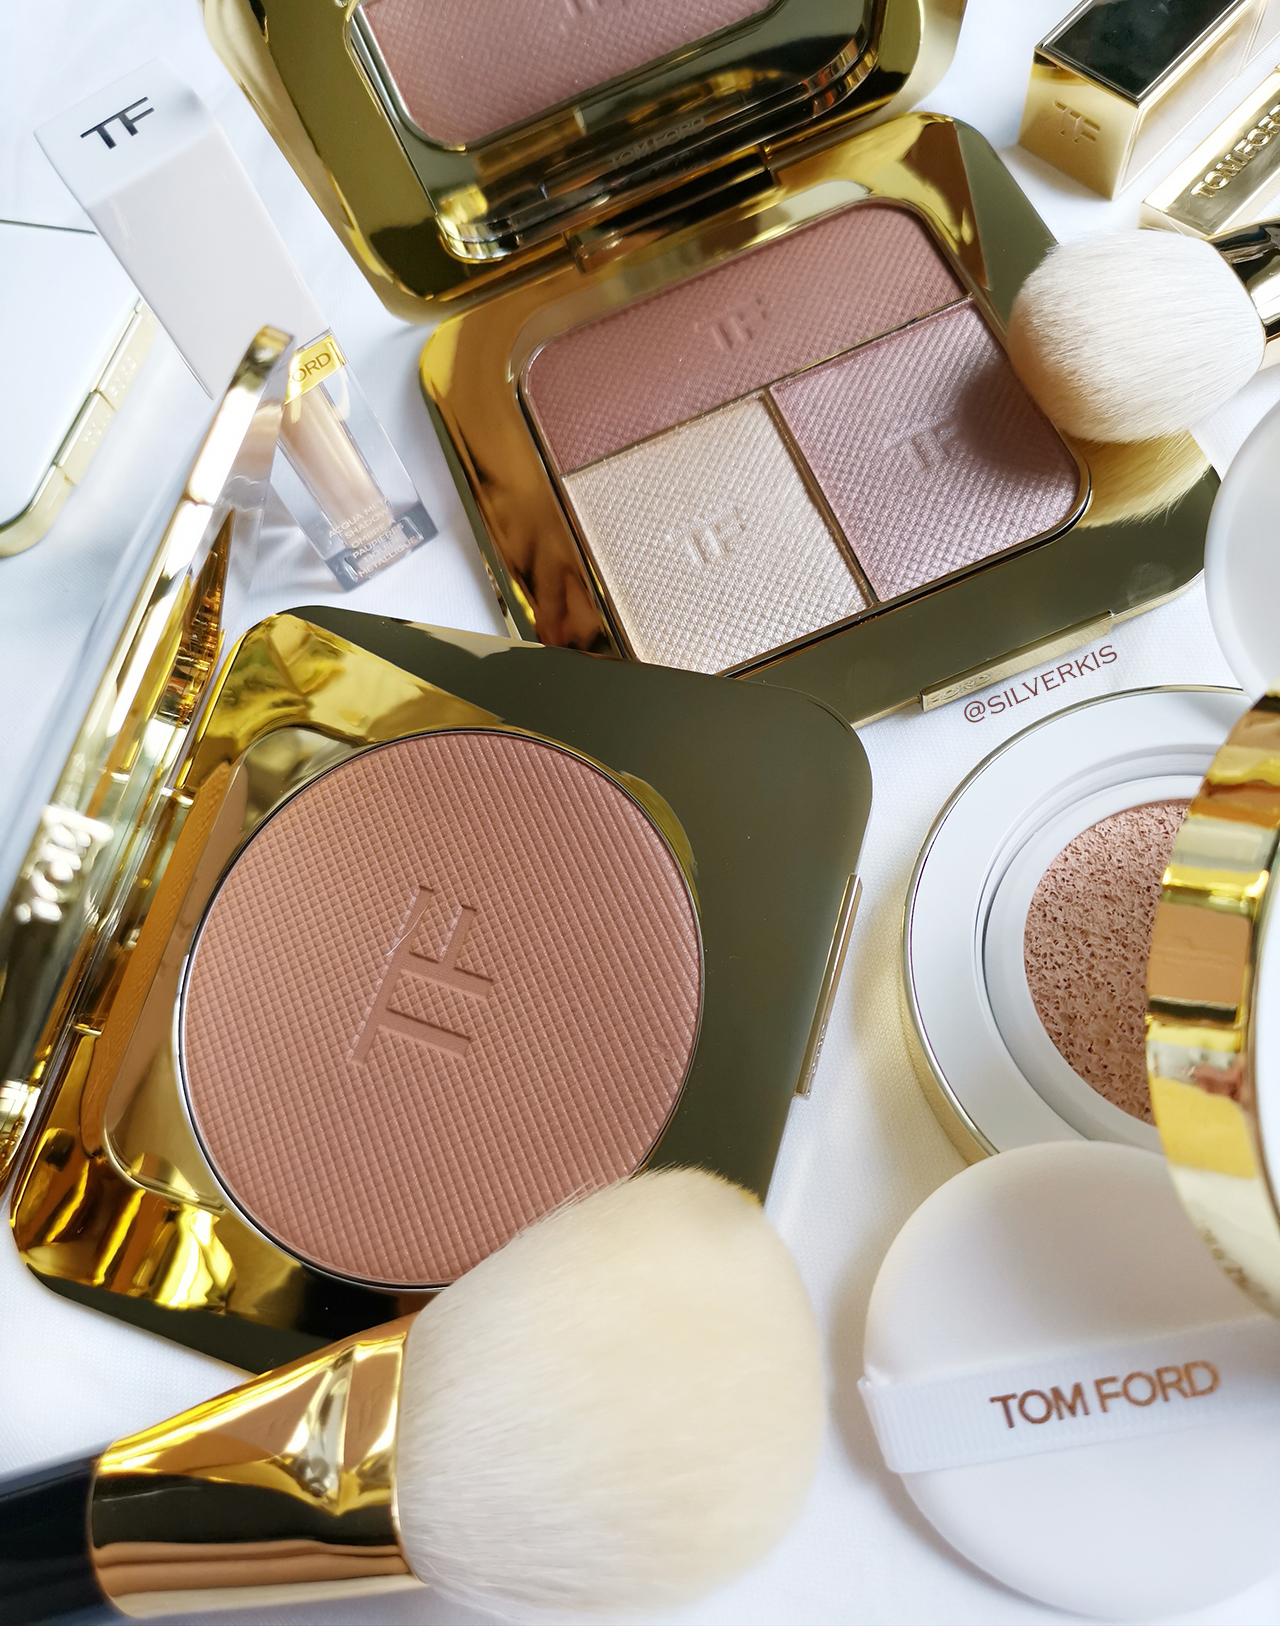 Tom Ford Soleil Glow Bronzer & Contouring Compact